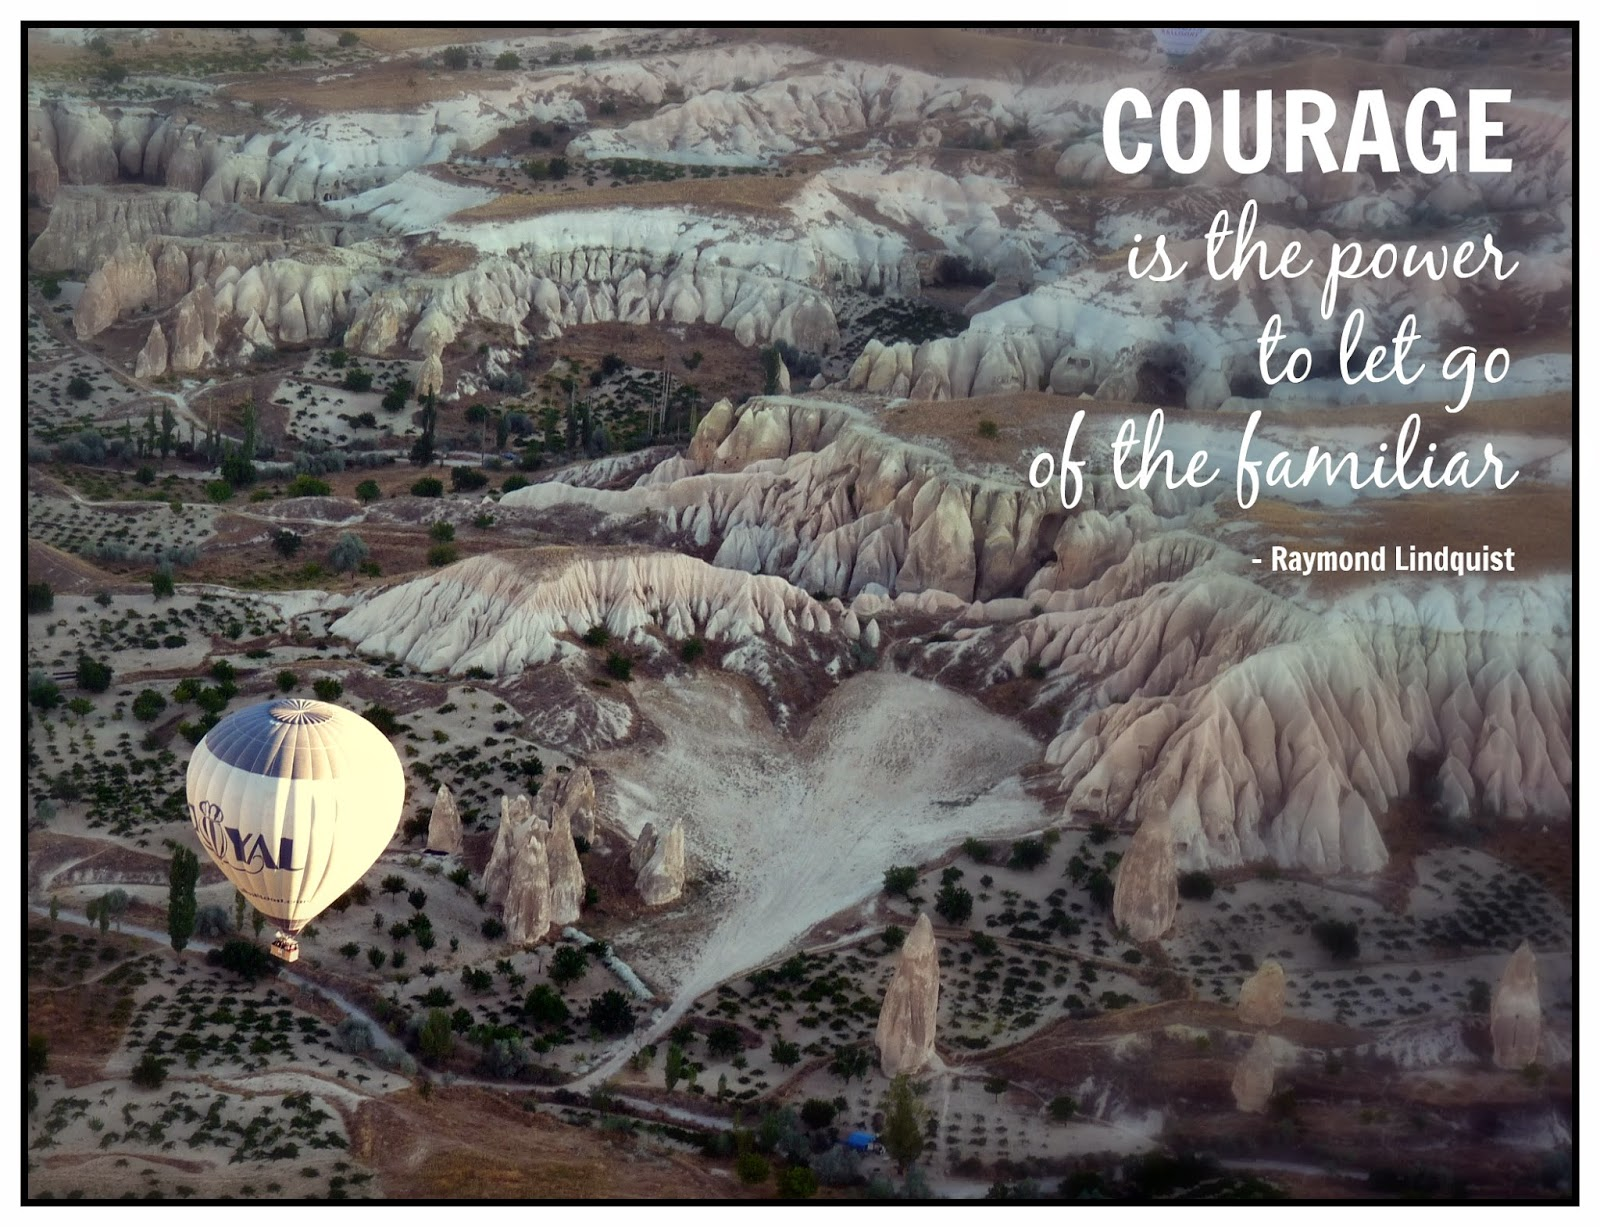 Courage is the power to let go of the familiar - Raymond Lindquist